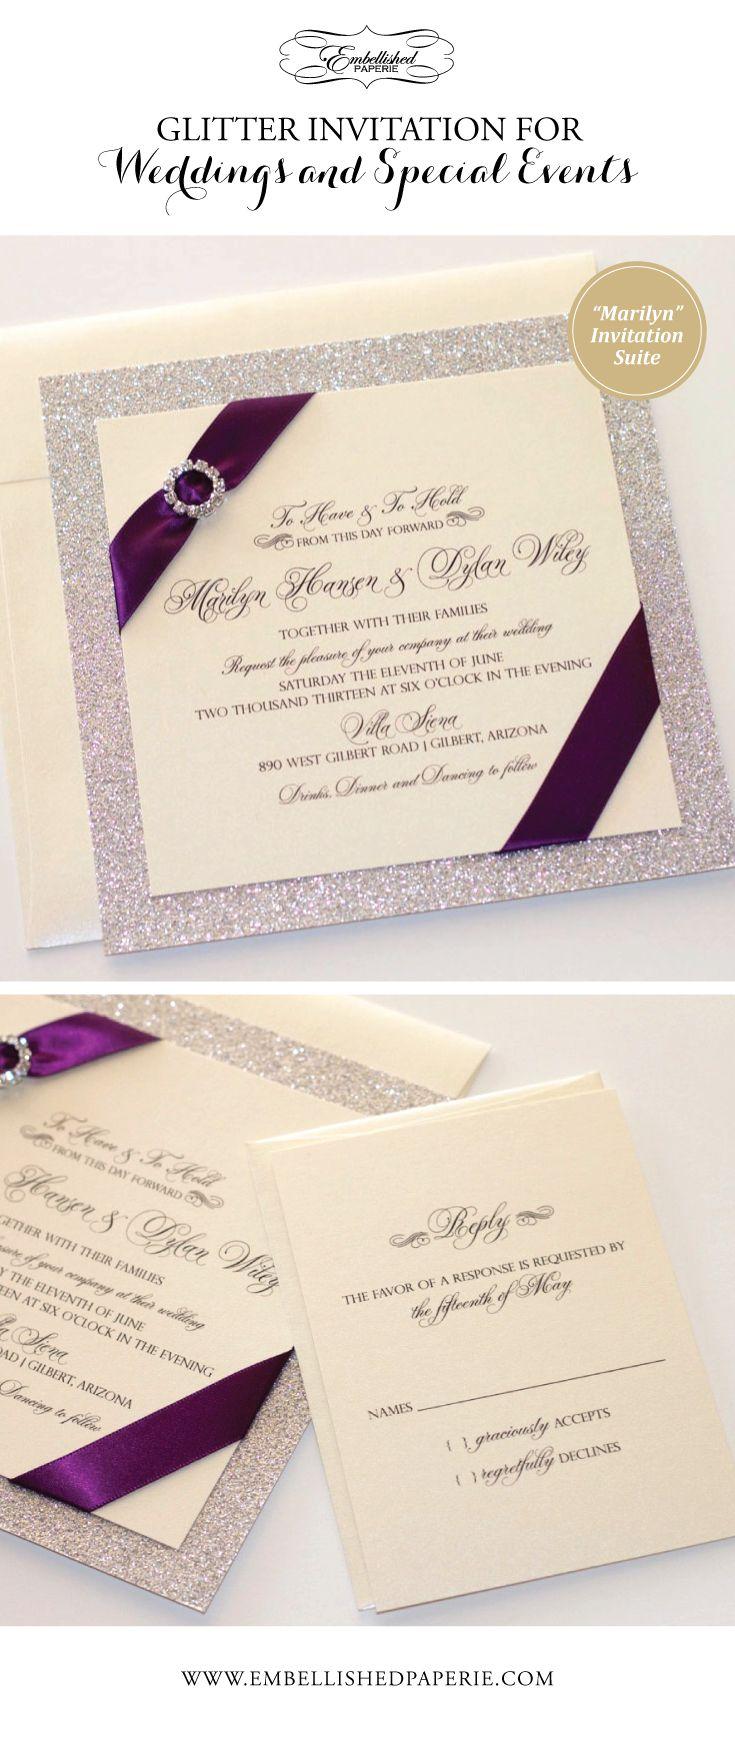 30 Best Wedding Invitation Cards Images On Pinterest Indian